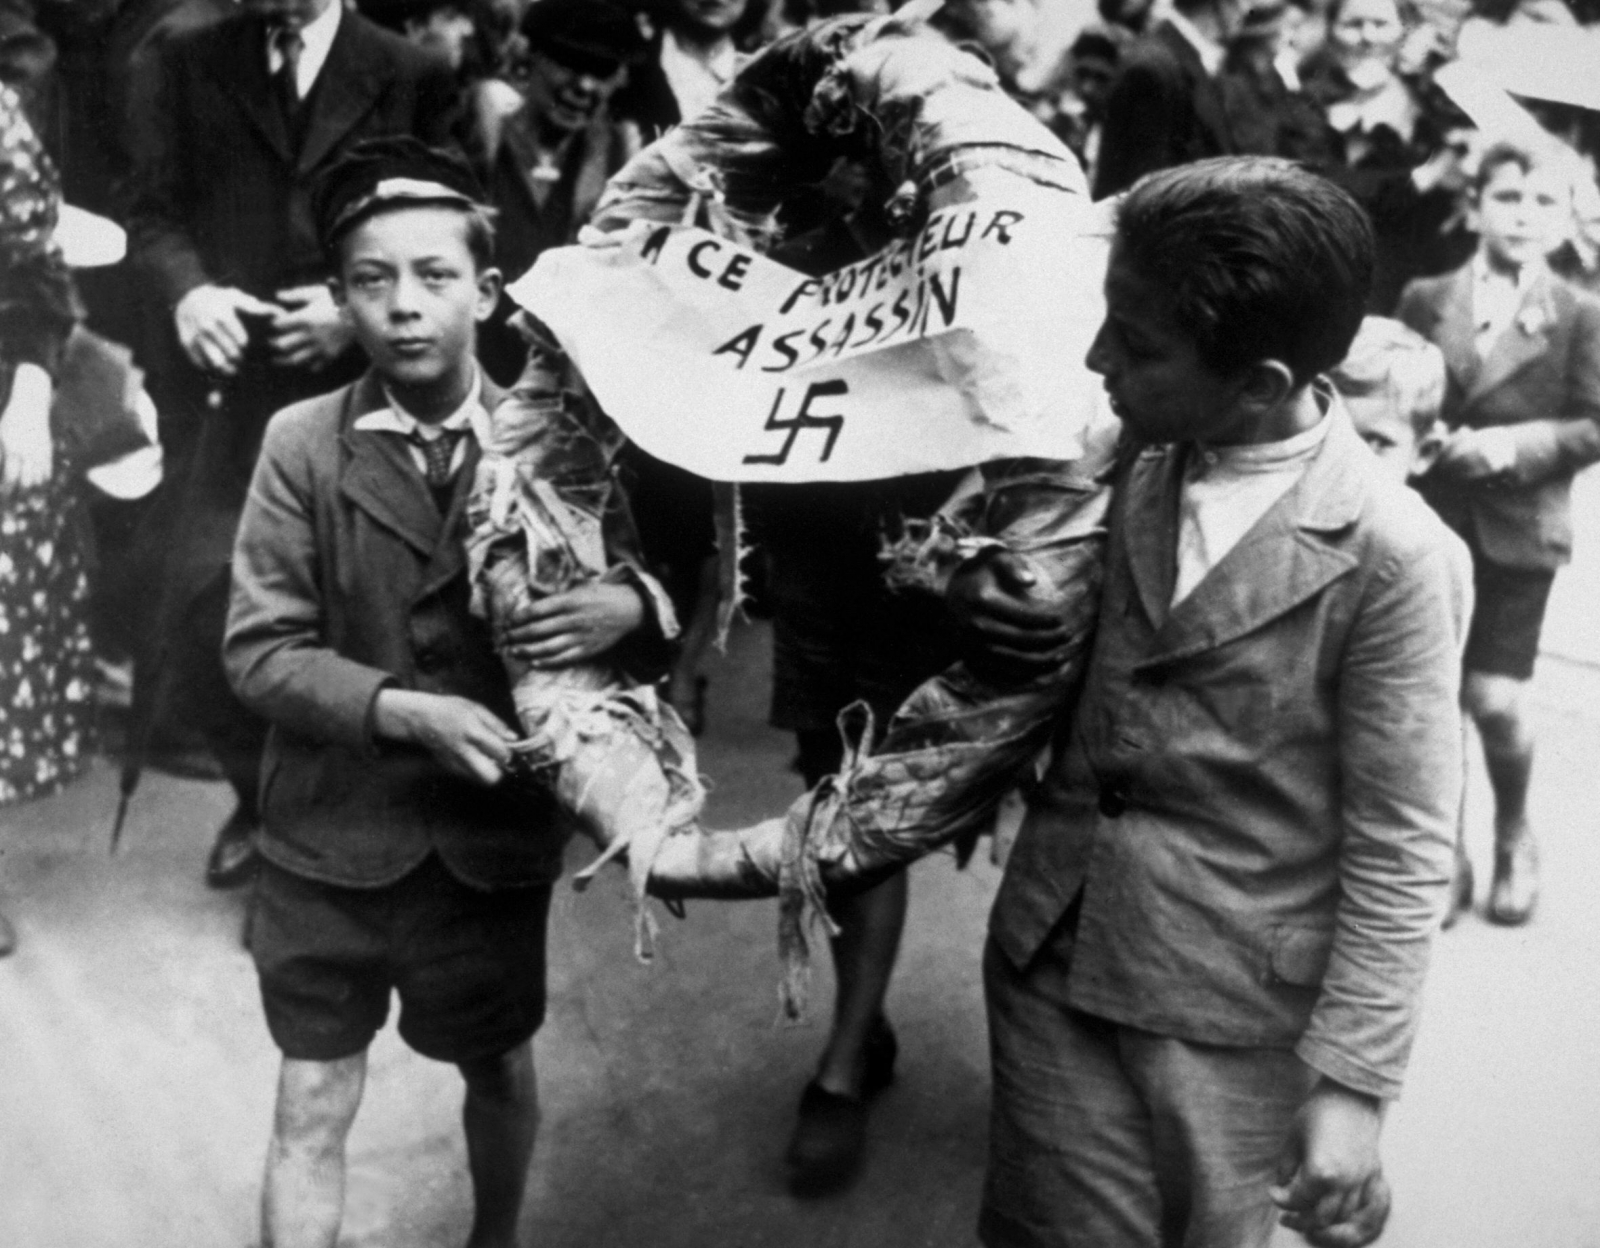 Young citizens of Brussels in Belgium lay in wreath for Nazi following liberation